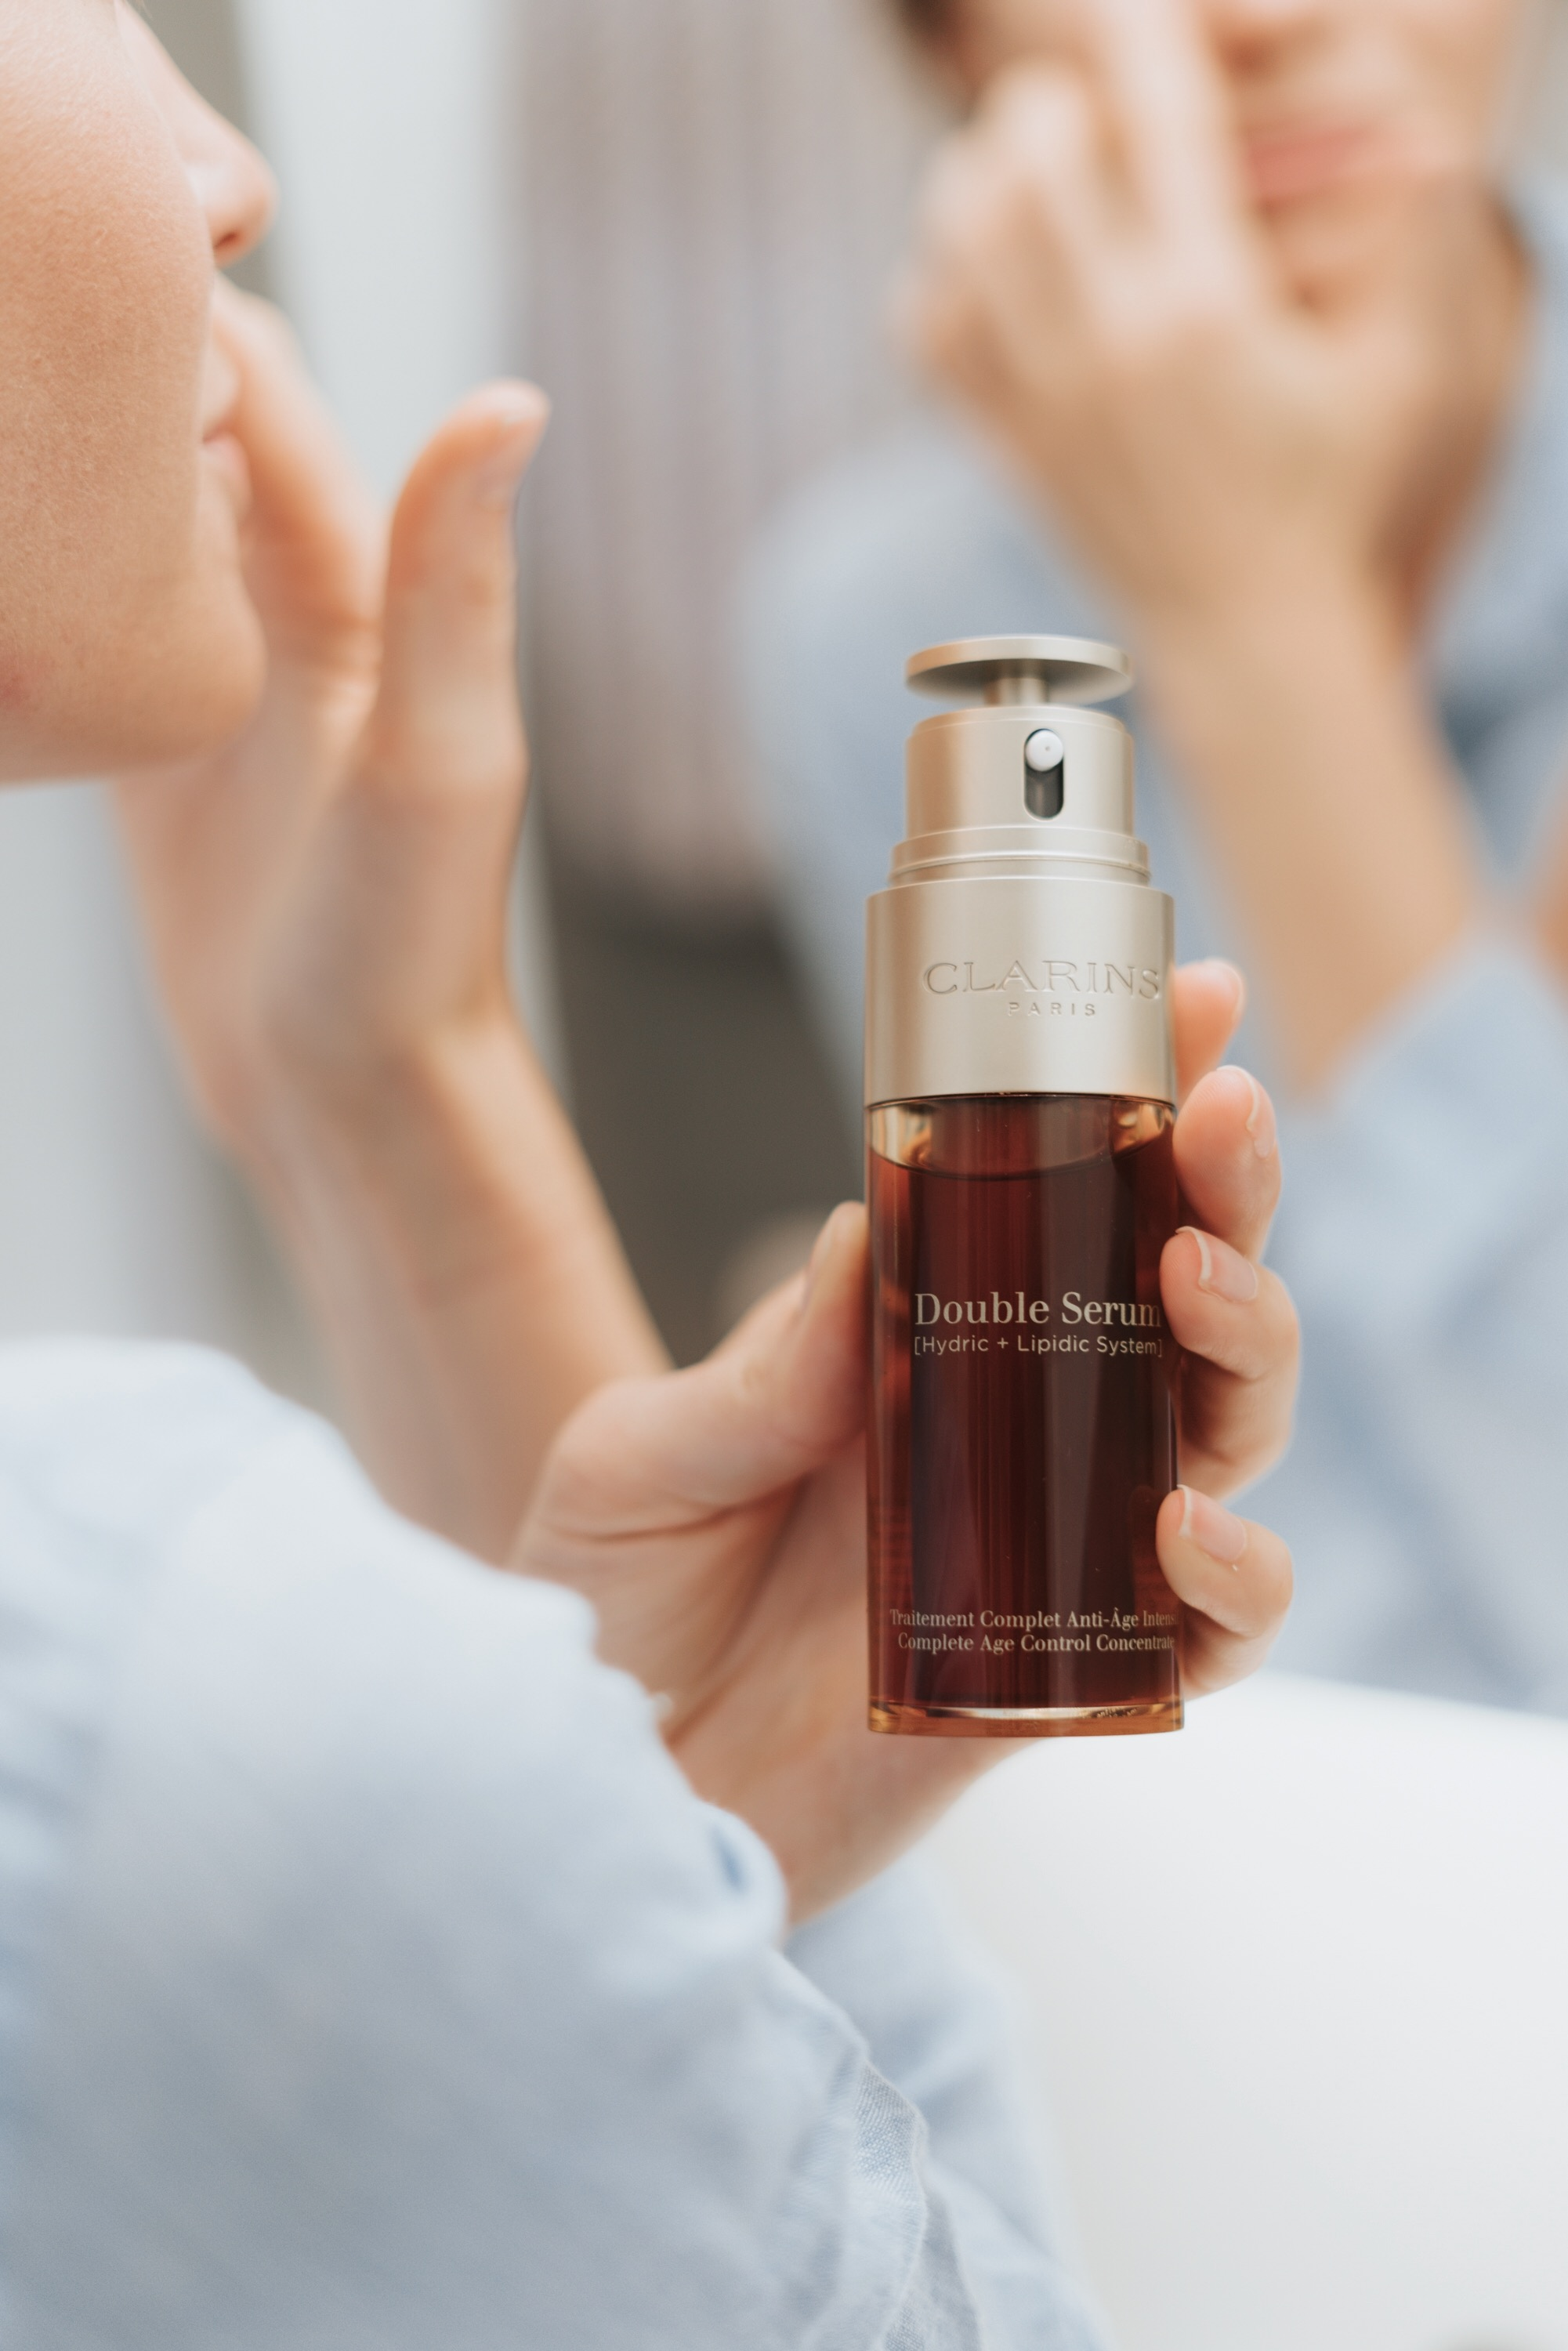 Clarins Double Serum Review 1.jpg